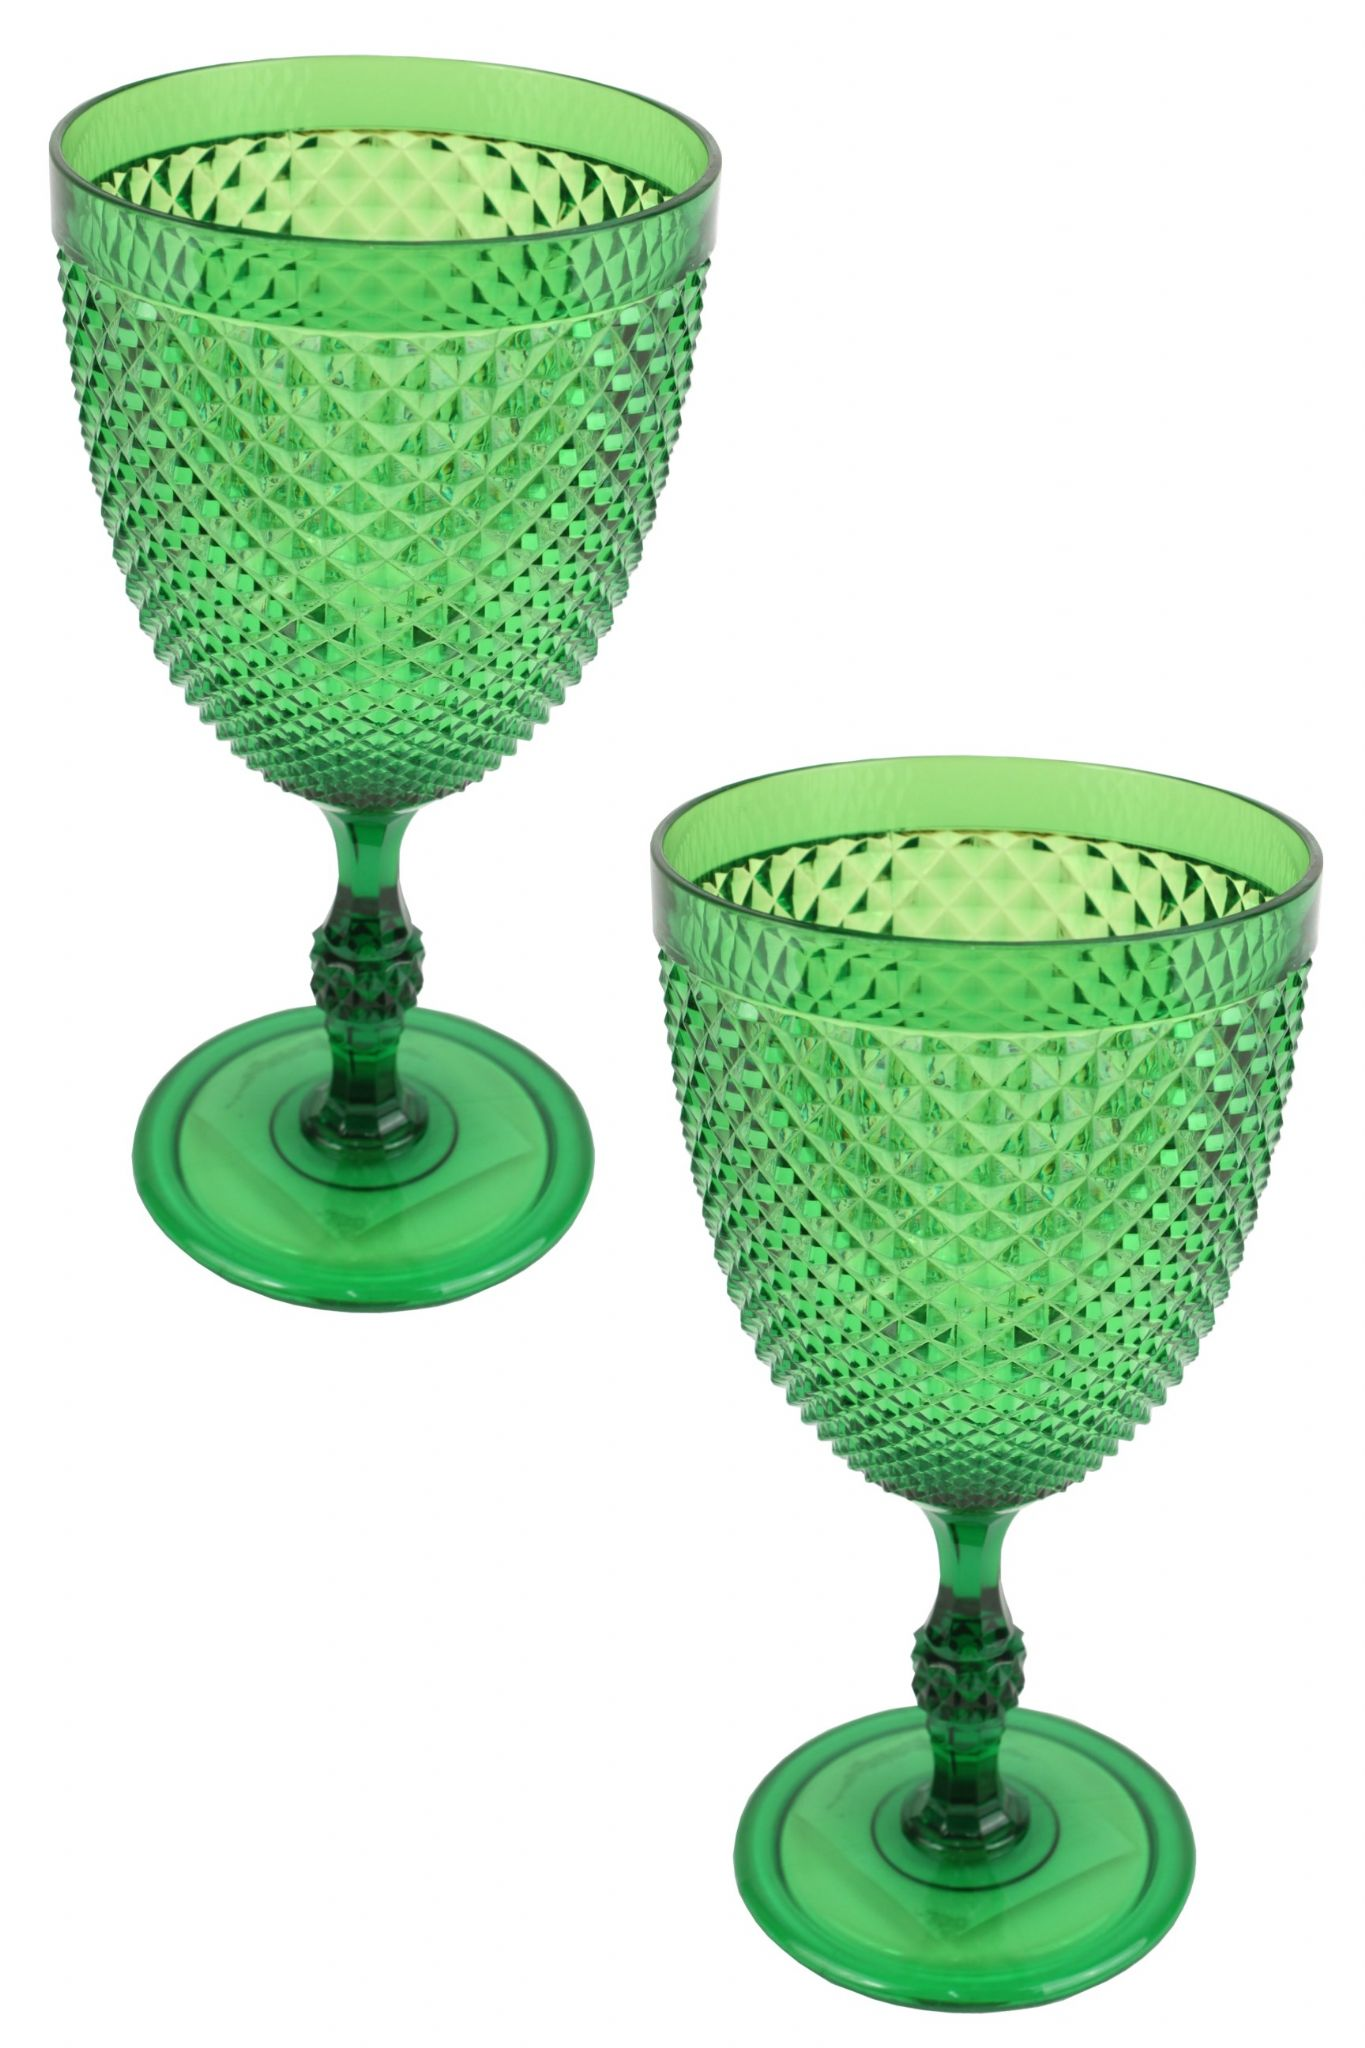 a608e5df2b4 Crystal Effect Plastic Party Picnic Wine Glasses Coloured Drinks Goblets  Capacity 300ml Set of 2